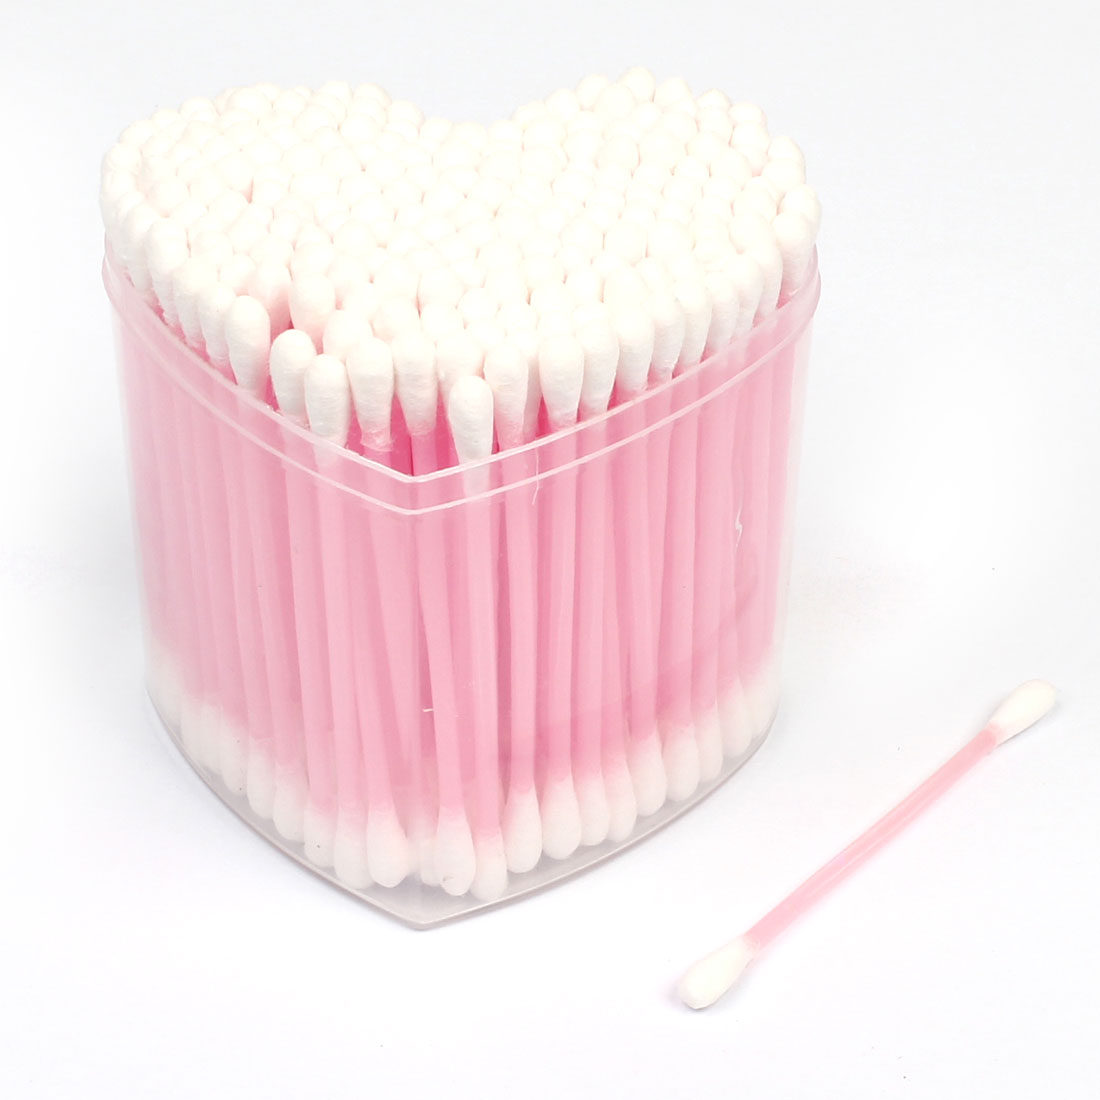 200Pcs Heart Shape Box Double End Head Cosmetic Cotton Swab Bud Clear Pink White